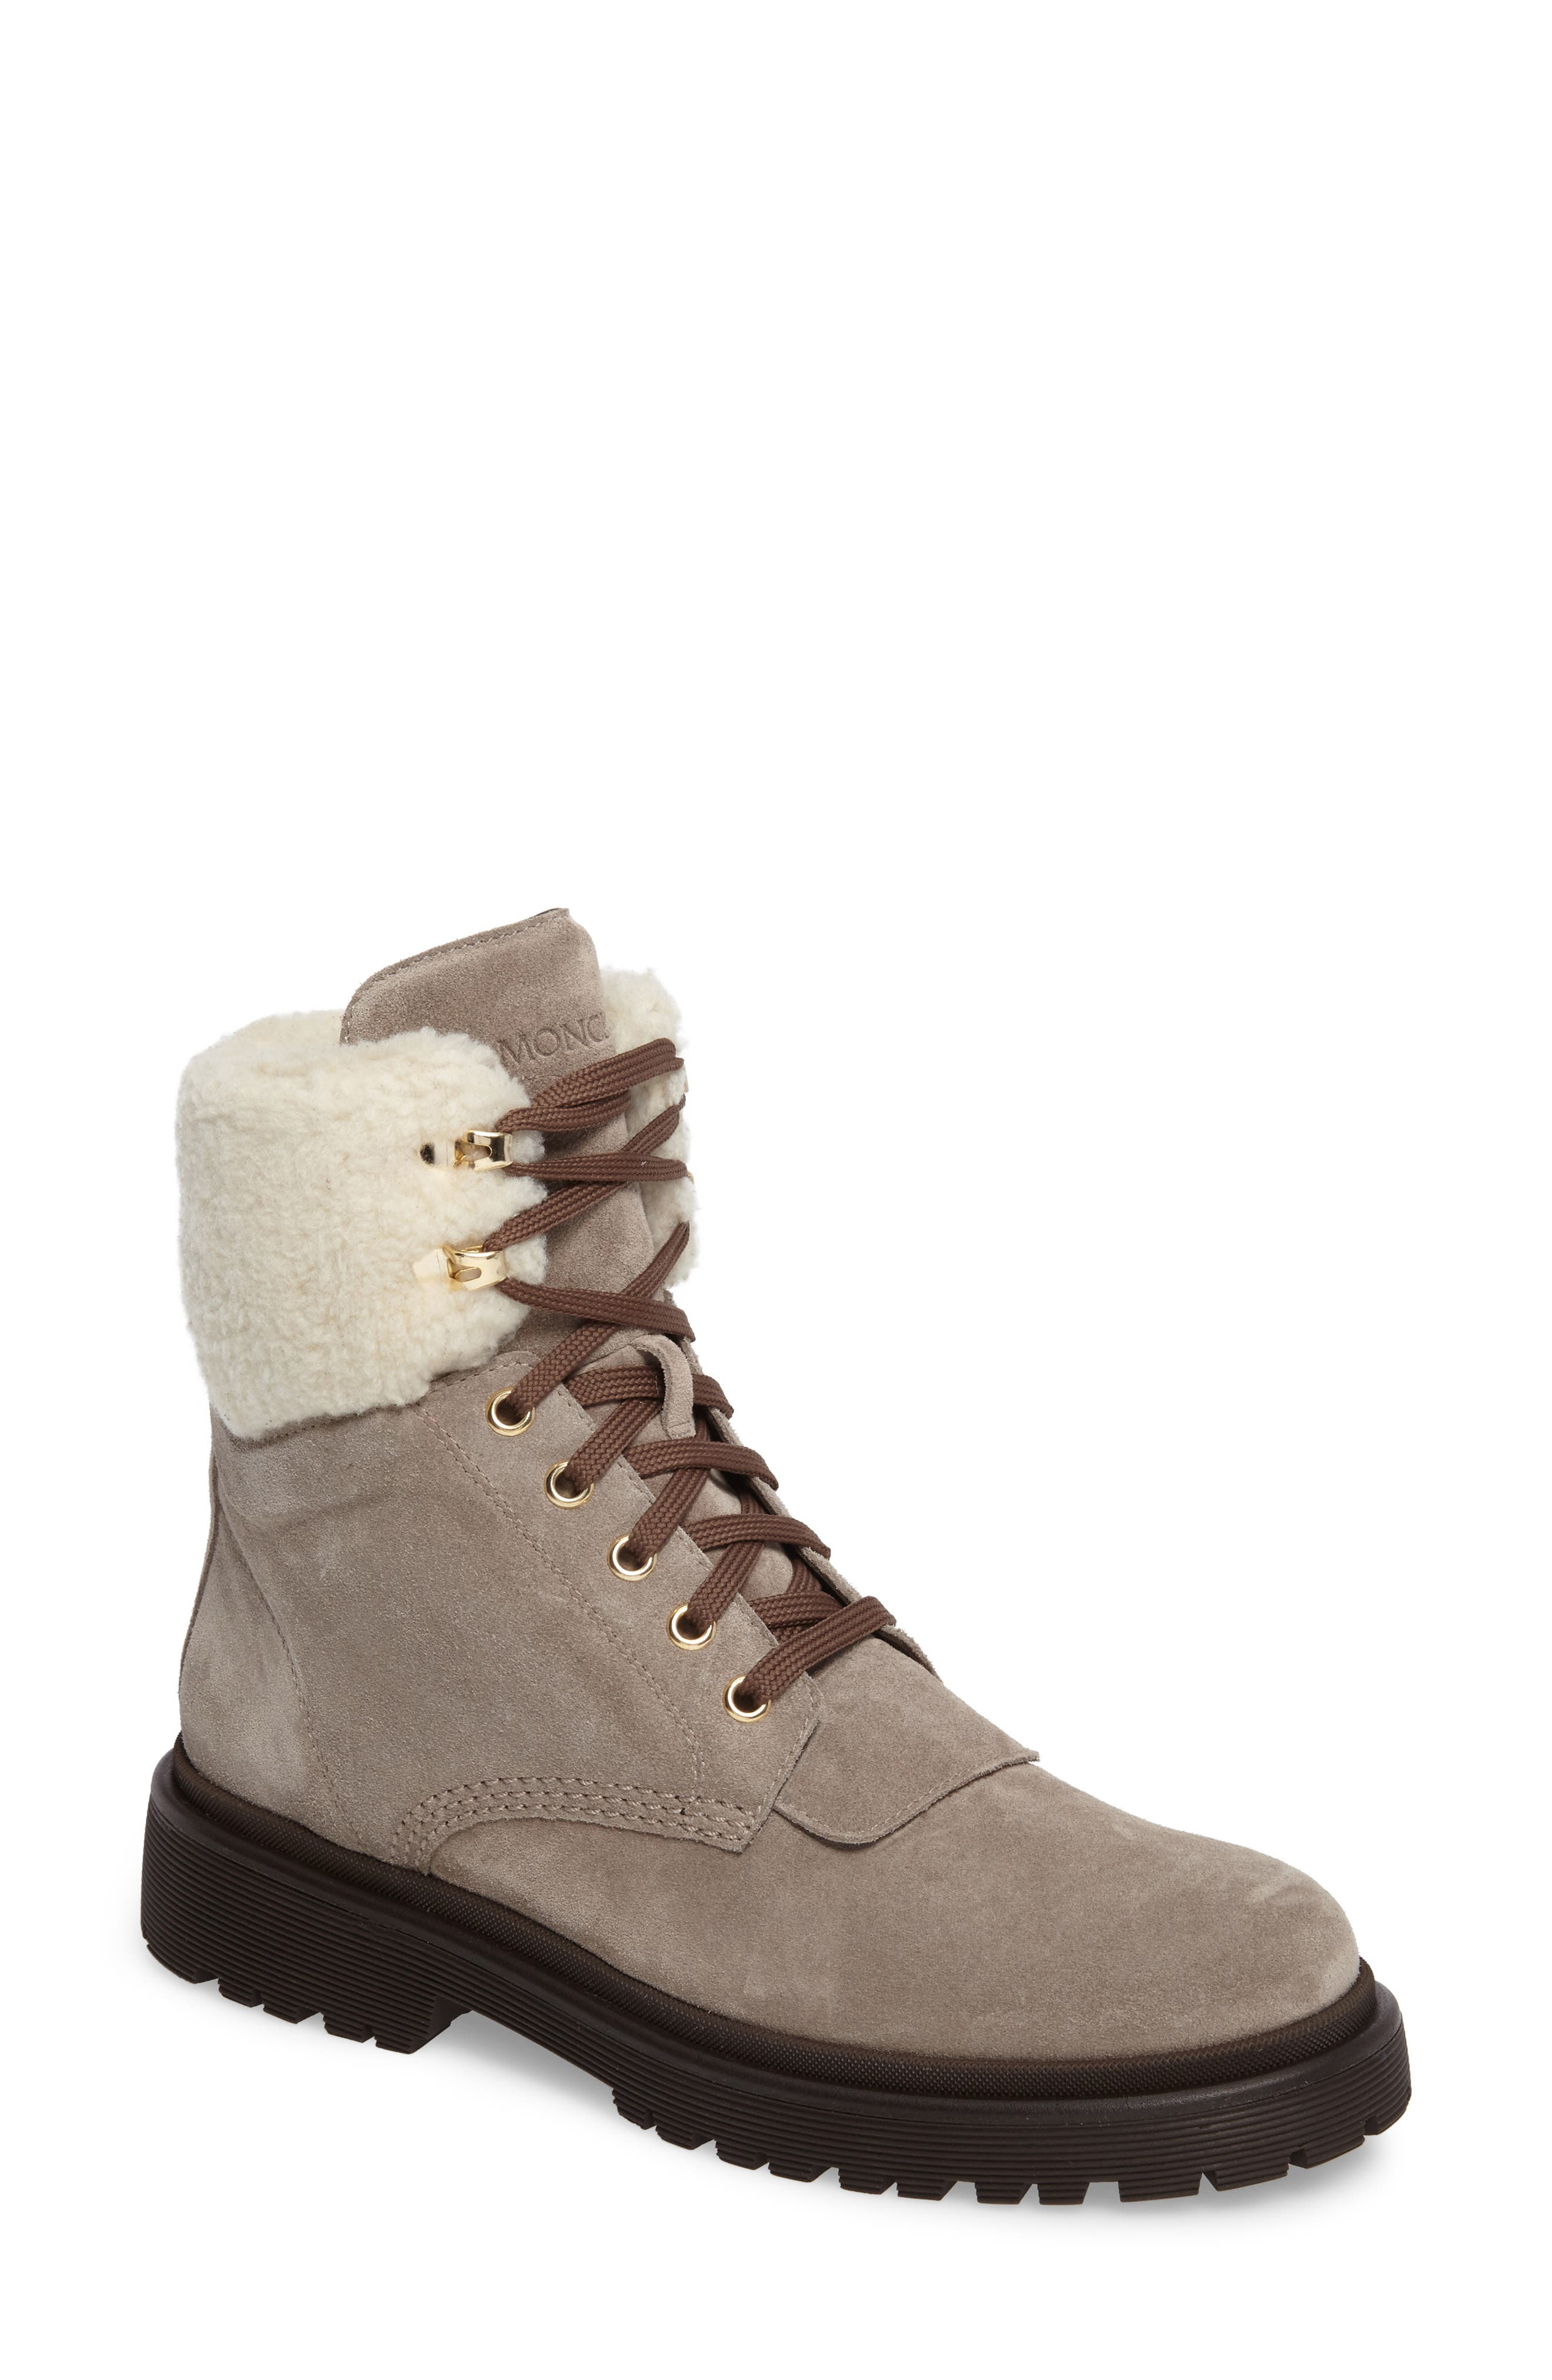 Patty Scarpa Faux Shearling Cuff Boot,                             Main thumbnail 1, color,                             BEIGE